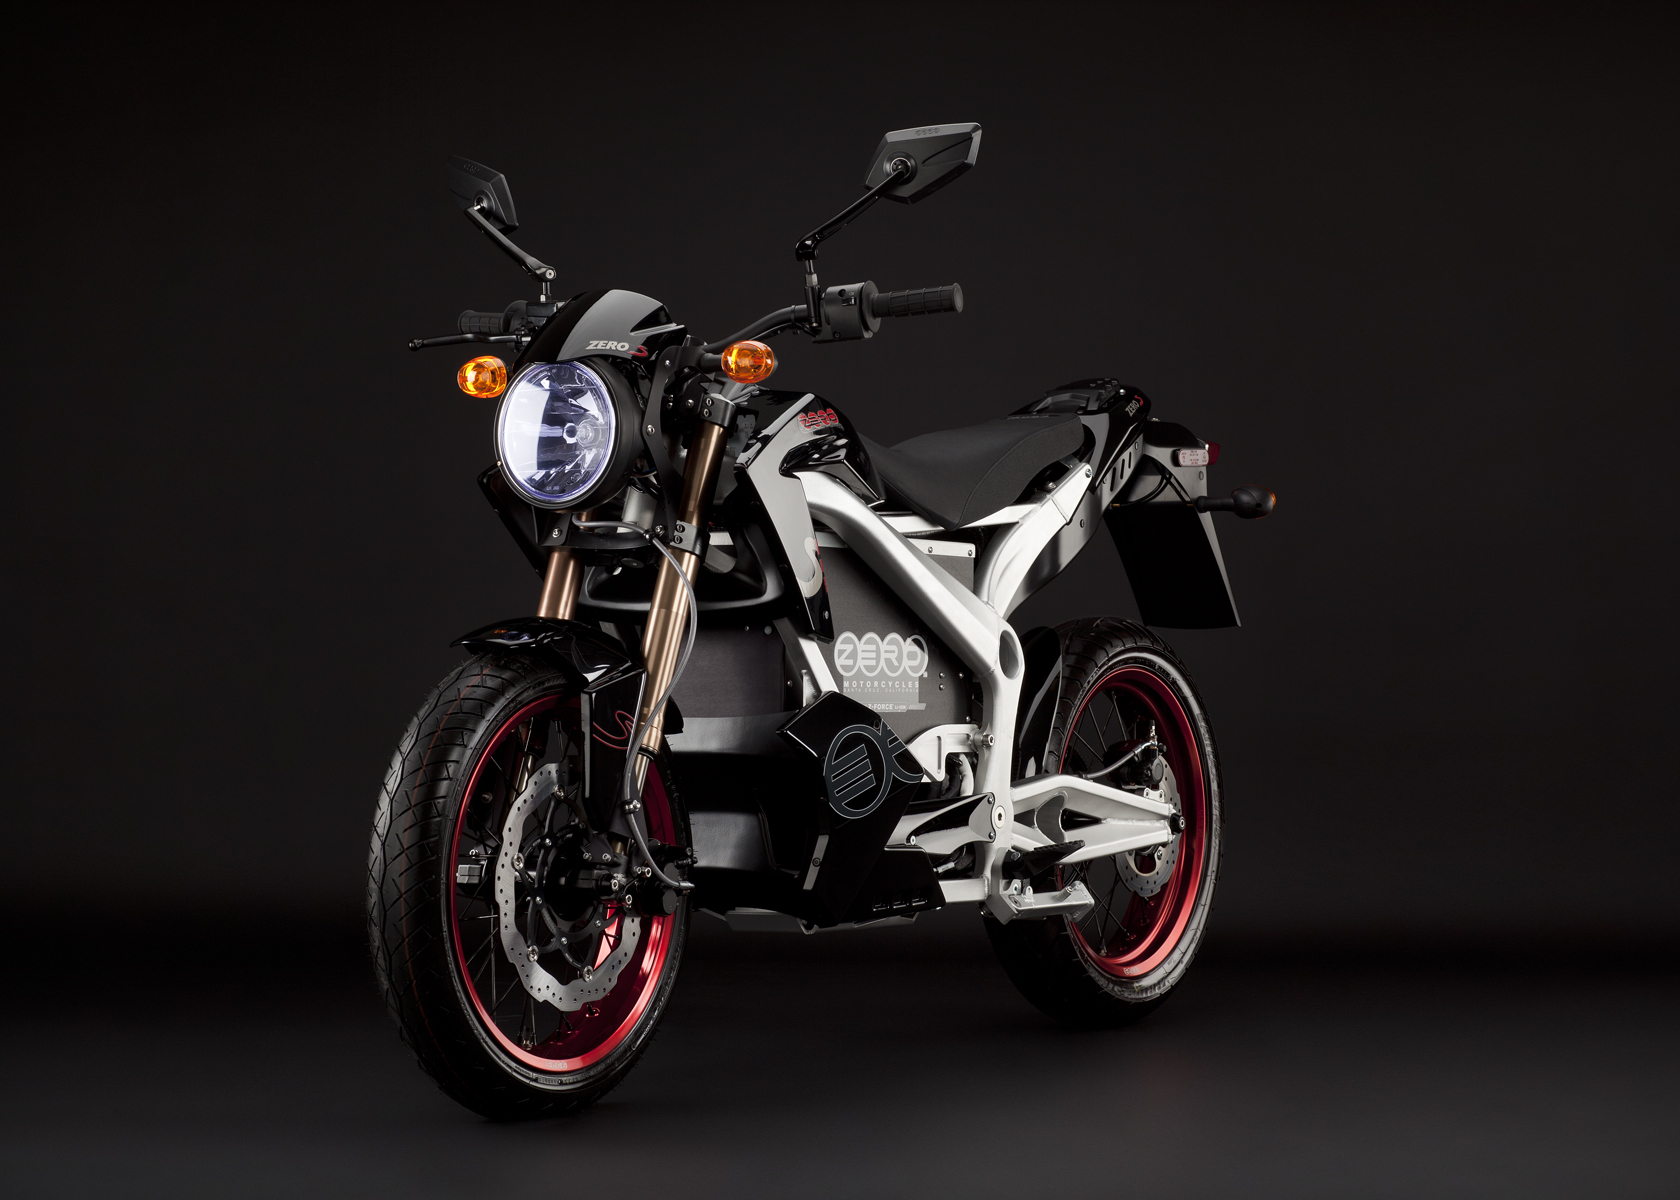 2011 Zero S Electric Motorcycle: Black Angle Left